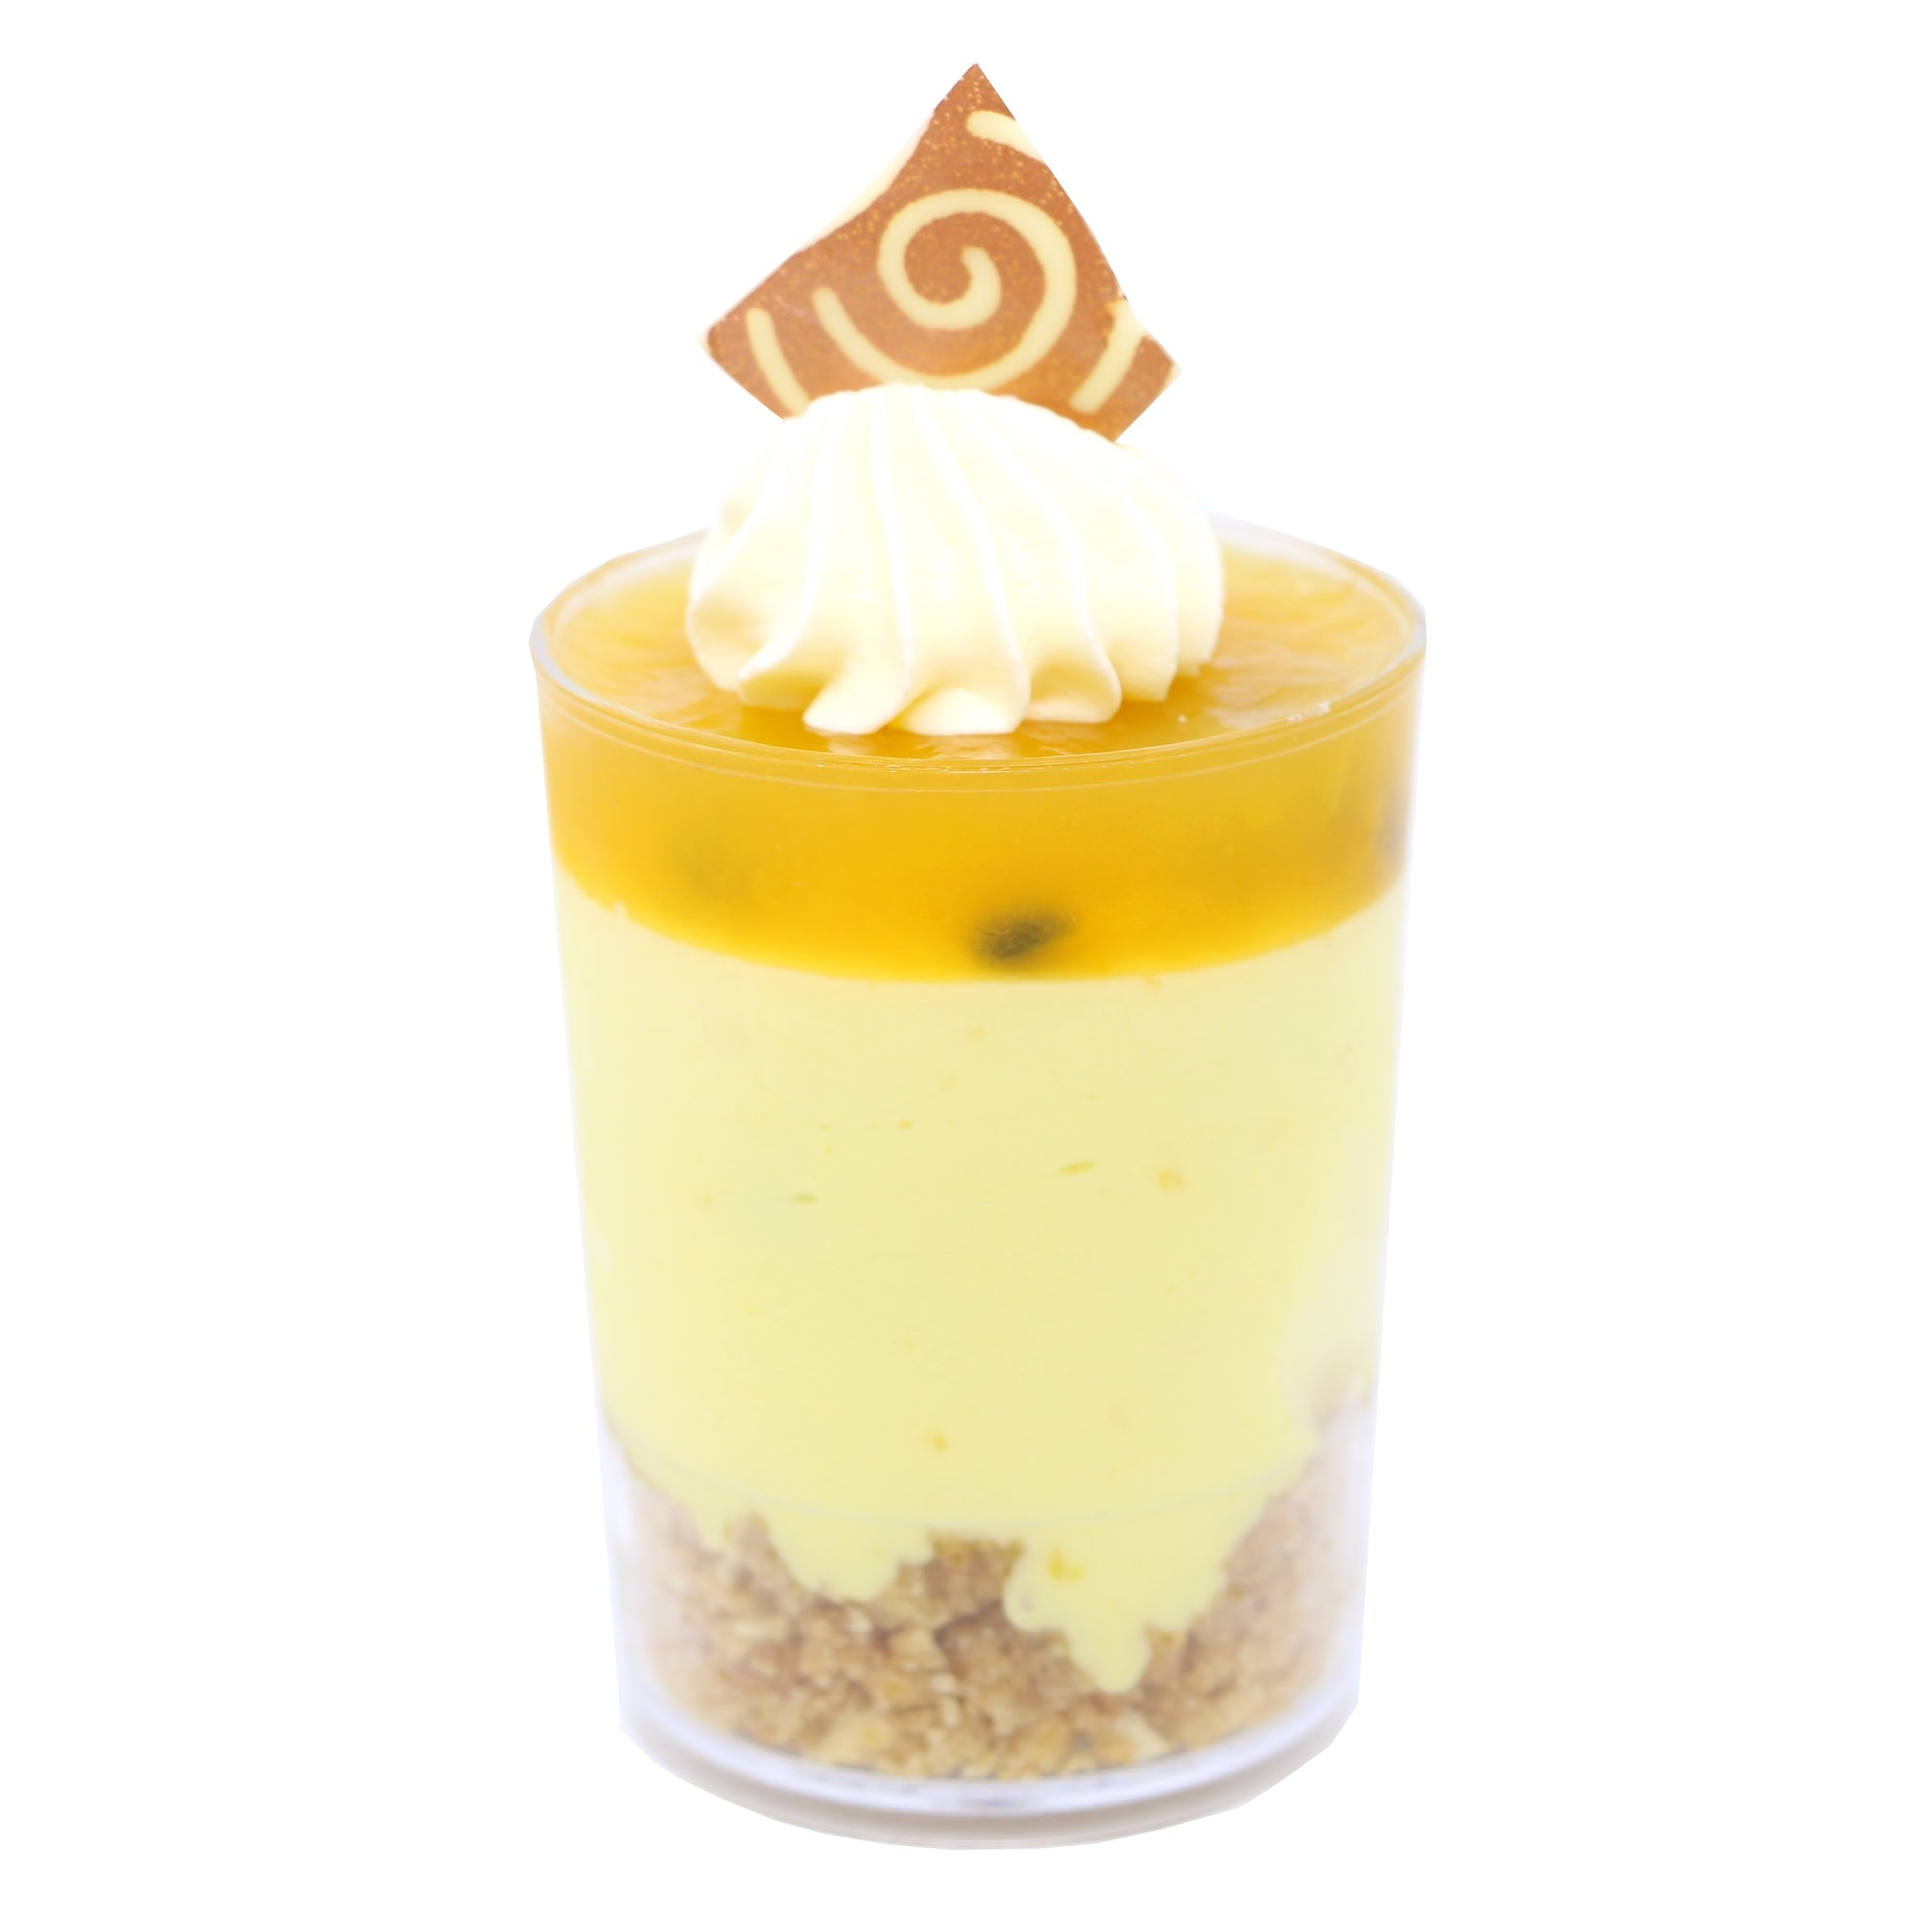 Dessert Cup - Passionfruit Cheesecake - Treats2eat - Wedding & Birthday Party Dessert Catering Near Me